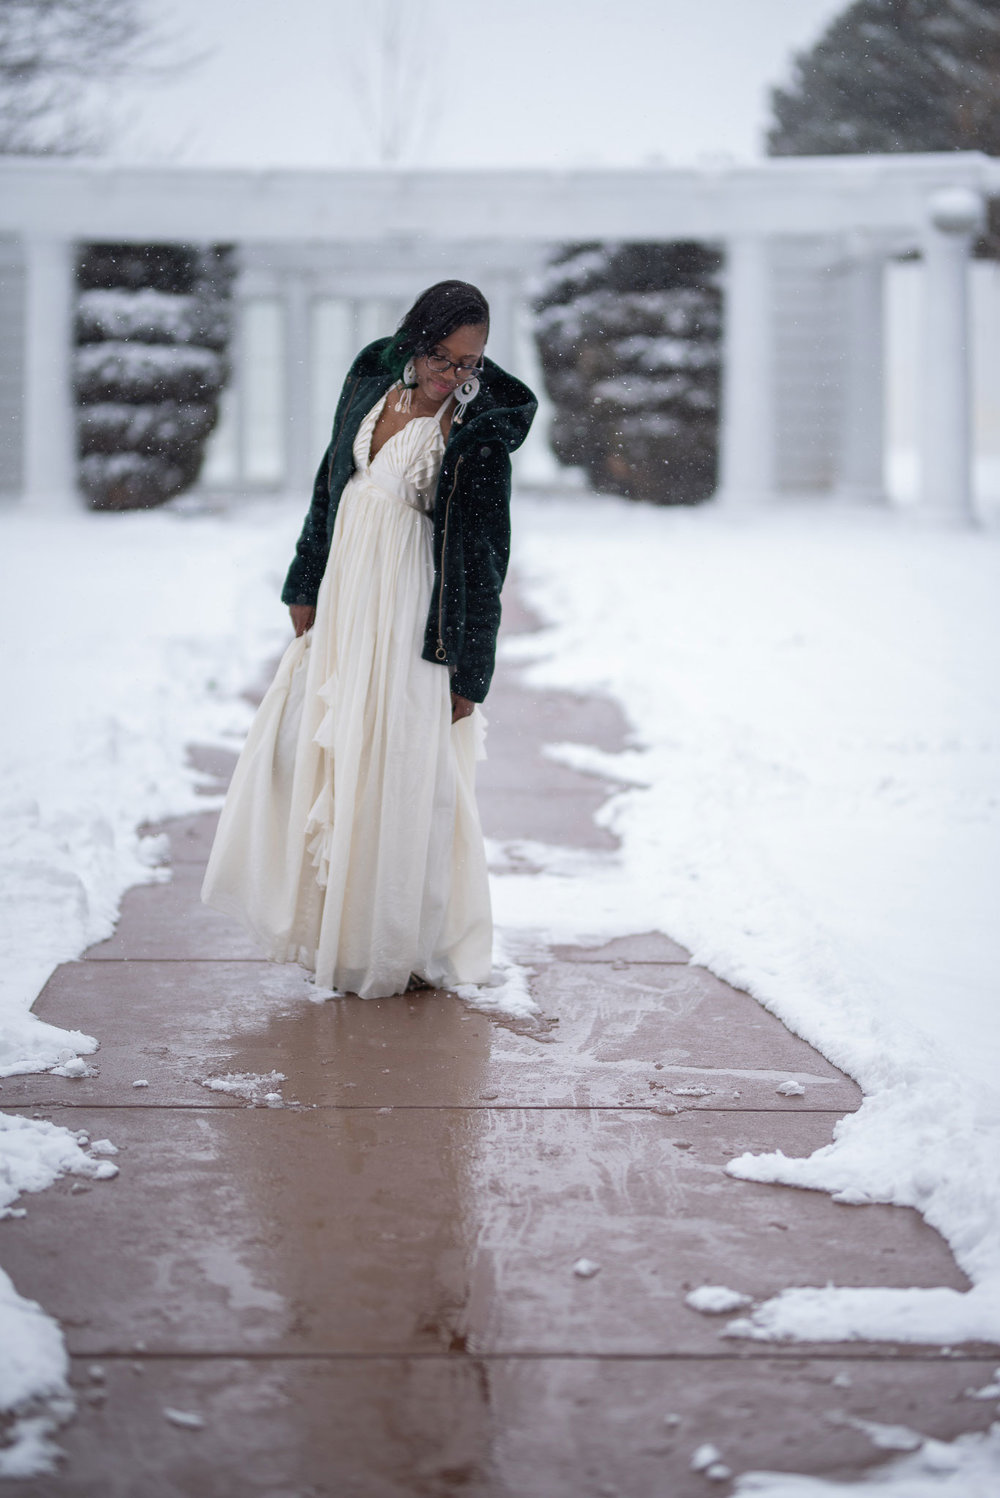 Bridal model in wedding dress in the snow at the Cannabis Wedding Expo in Denver, Colorado. Photo by Kenesha Facello.